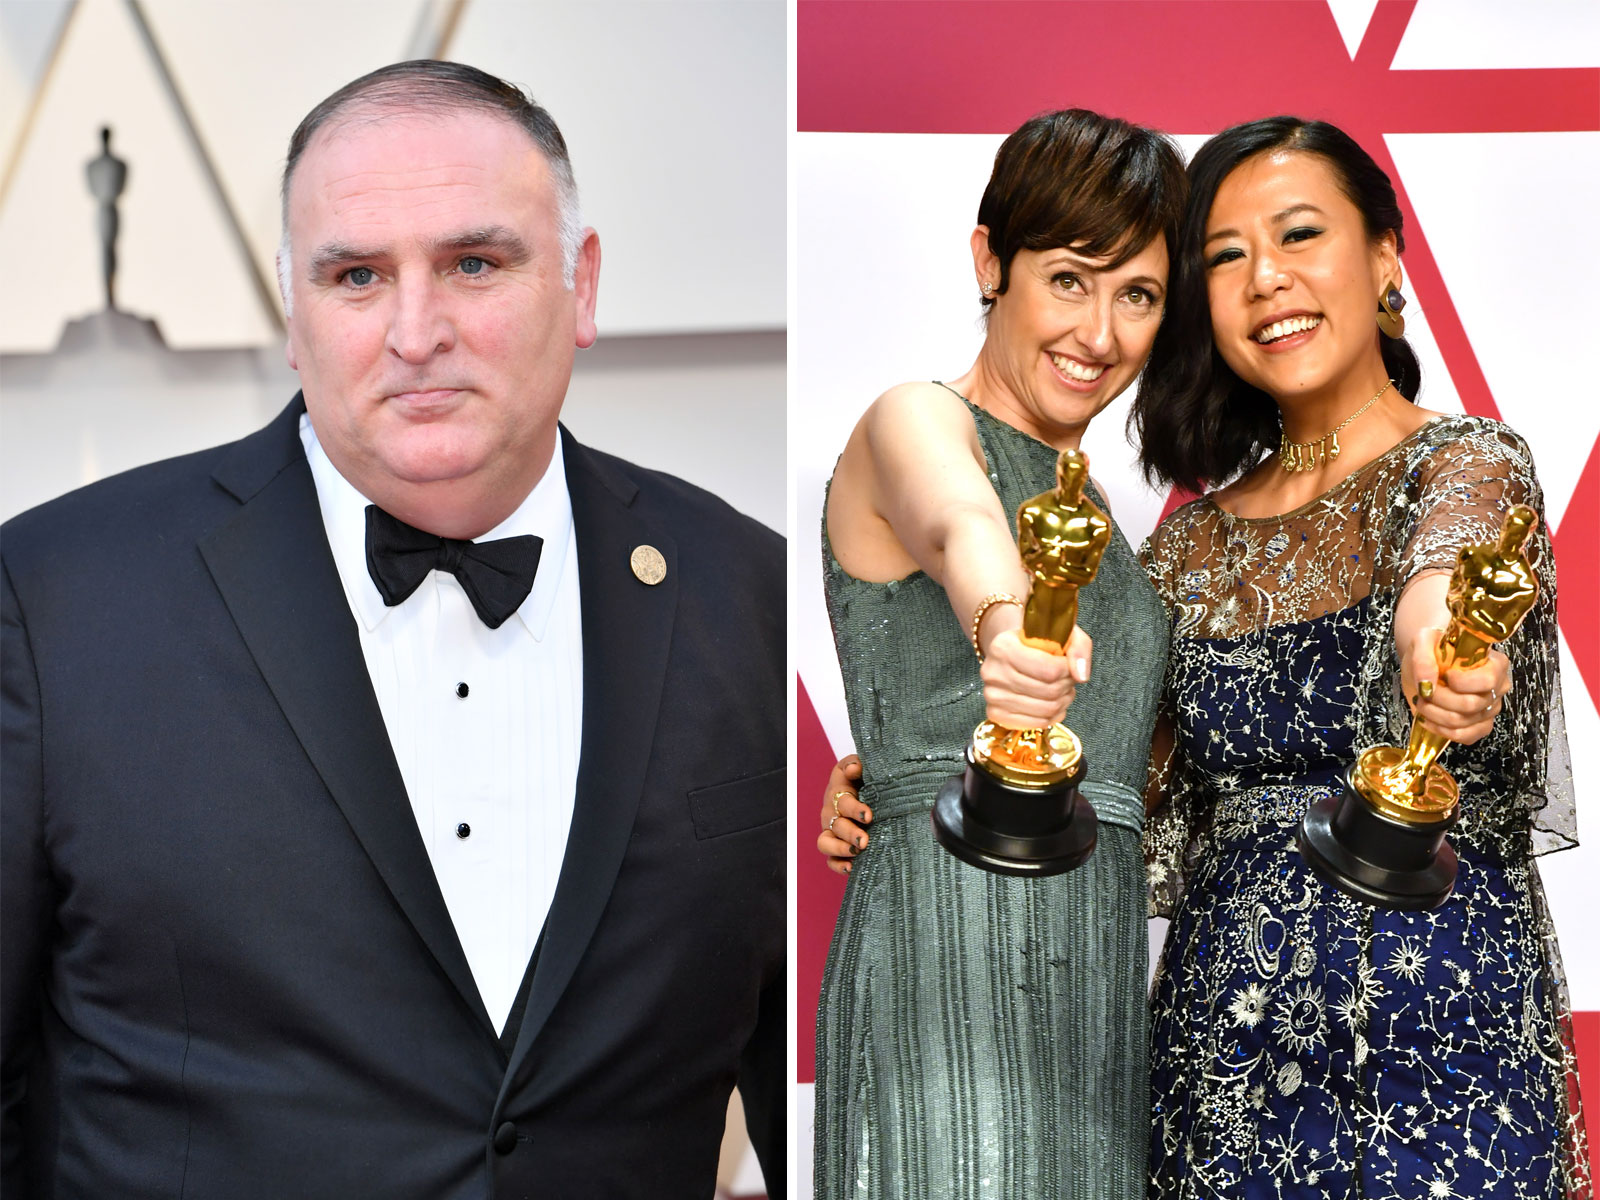 'Bao' Takes Home Gold, José Andrés Highlights 'Invisible People' at 91st Oscars